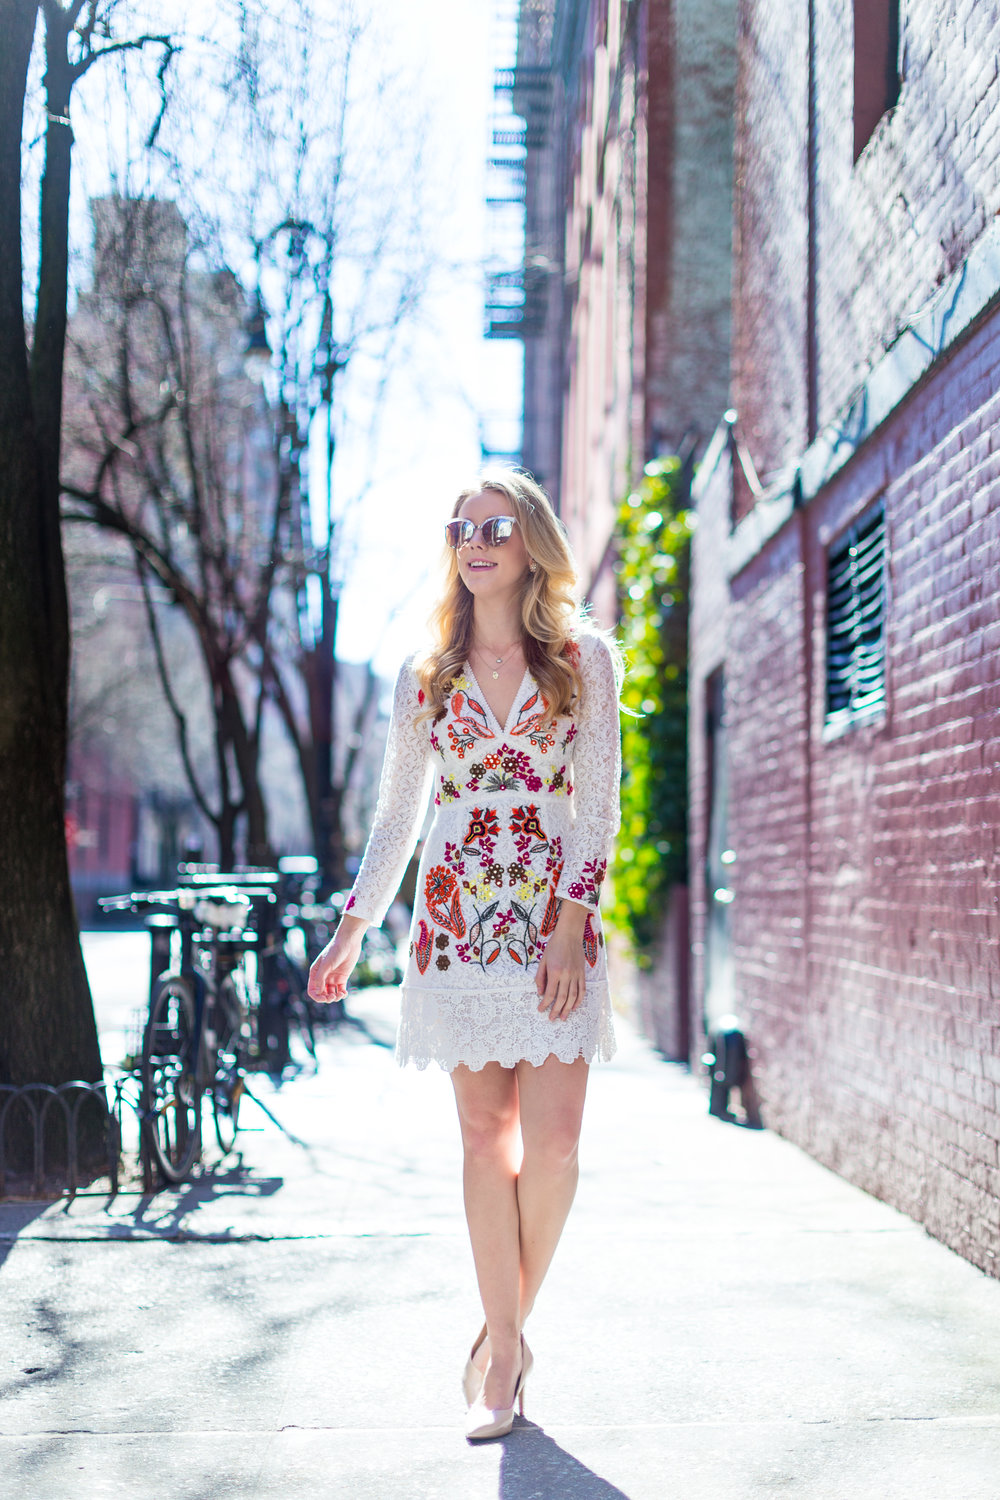 West Village NYC Embroidered Lace Outfit-11.jpg